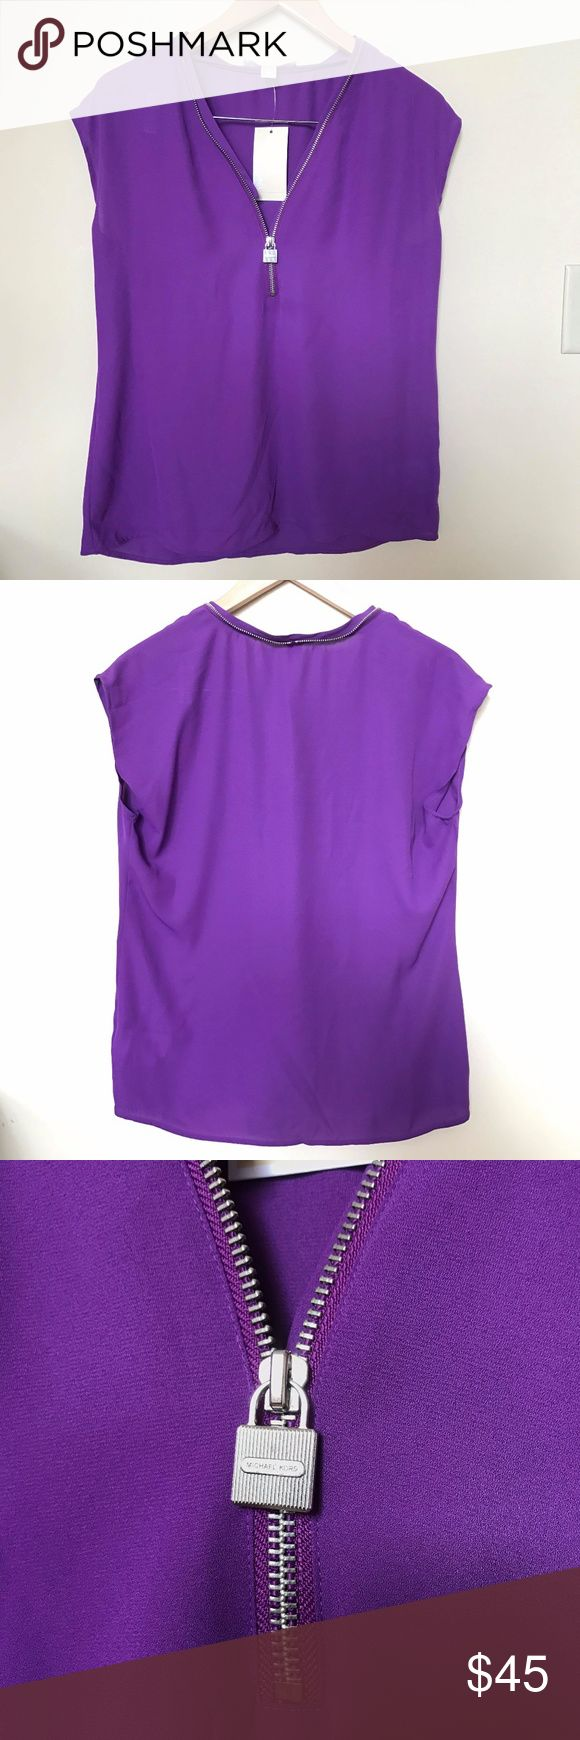 """MICHAEL KORS VIOLET GLAZE SLEEVELESS TOP SIZE S Gorgeous MICHAEL KORS VIOLET GLAZE SLEEVELESS TOP Can be paired with pants or skirt.Light, flowy and Soft -Condition: Brand New with Tag Size:Small Measurements: Chest:  19 1/2""""      flat across Length:26"""" MSRP$  78    +tax Bundle up and save!No Trades please Reasonable offers are welcome. *Christian J. -Posh Ambassador;Posh Compliant *500+ Items listed, check out and shop! *N5 Michael Kors Tops Tank Tops"""